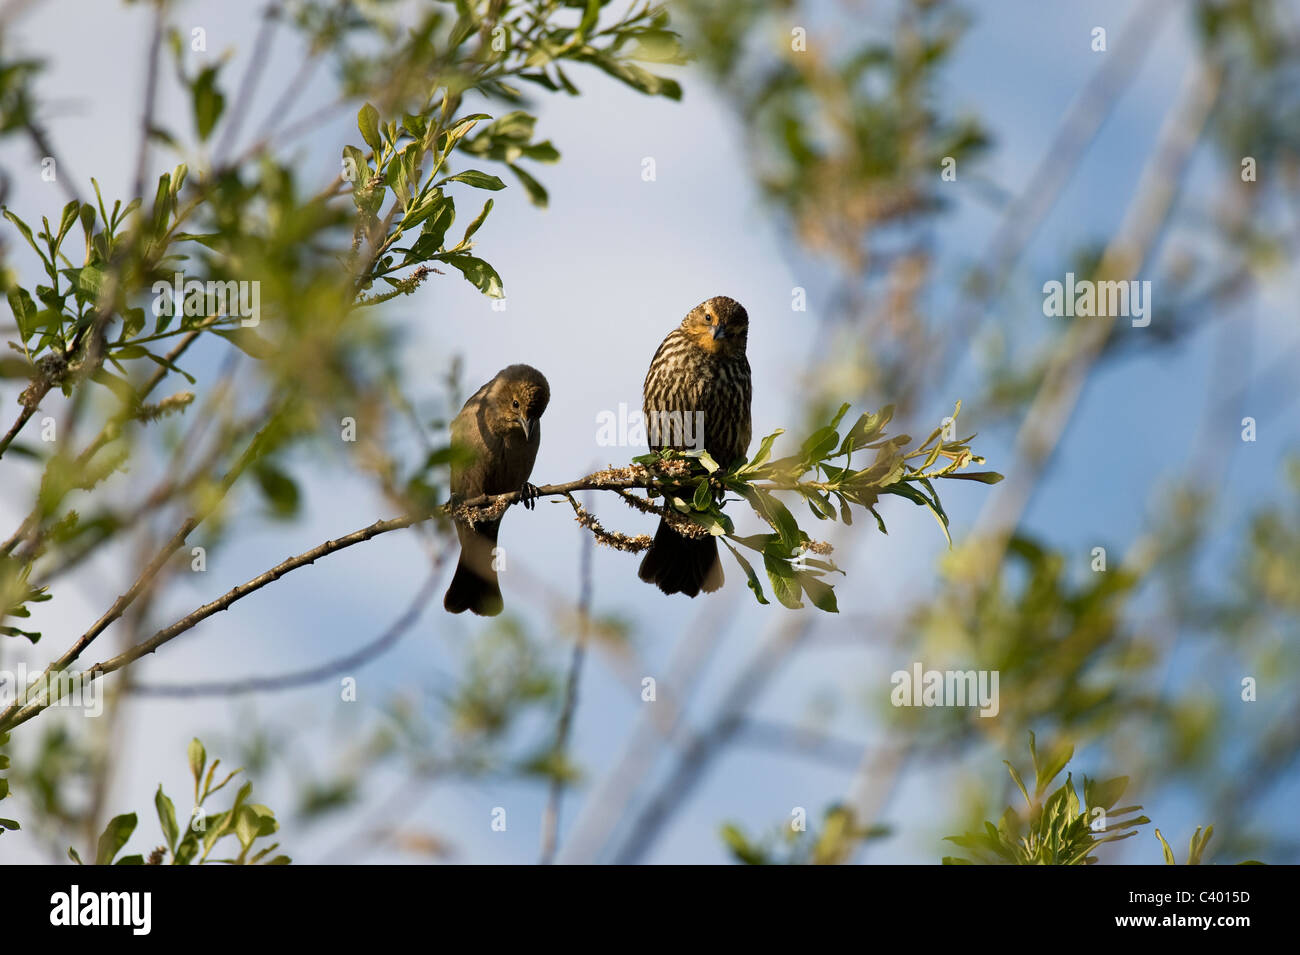 Two birds sitting on the branch - Stock Image